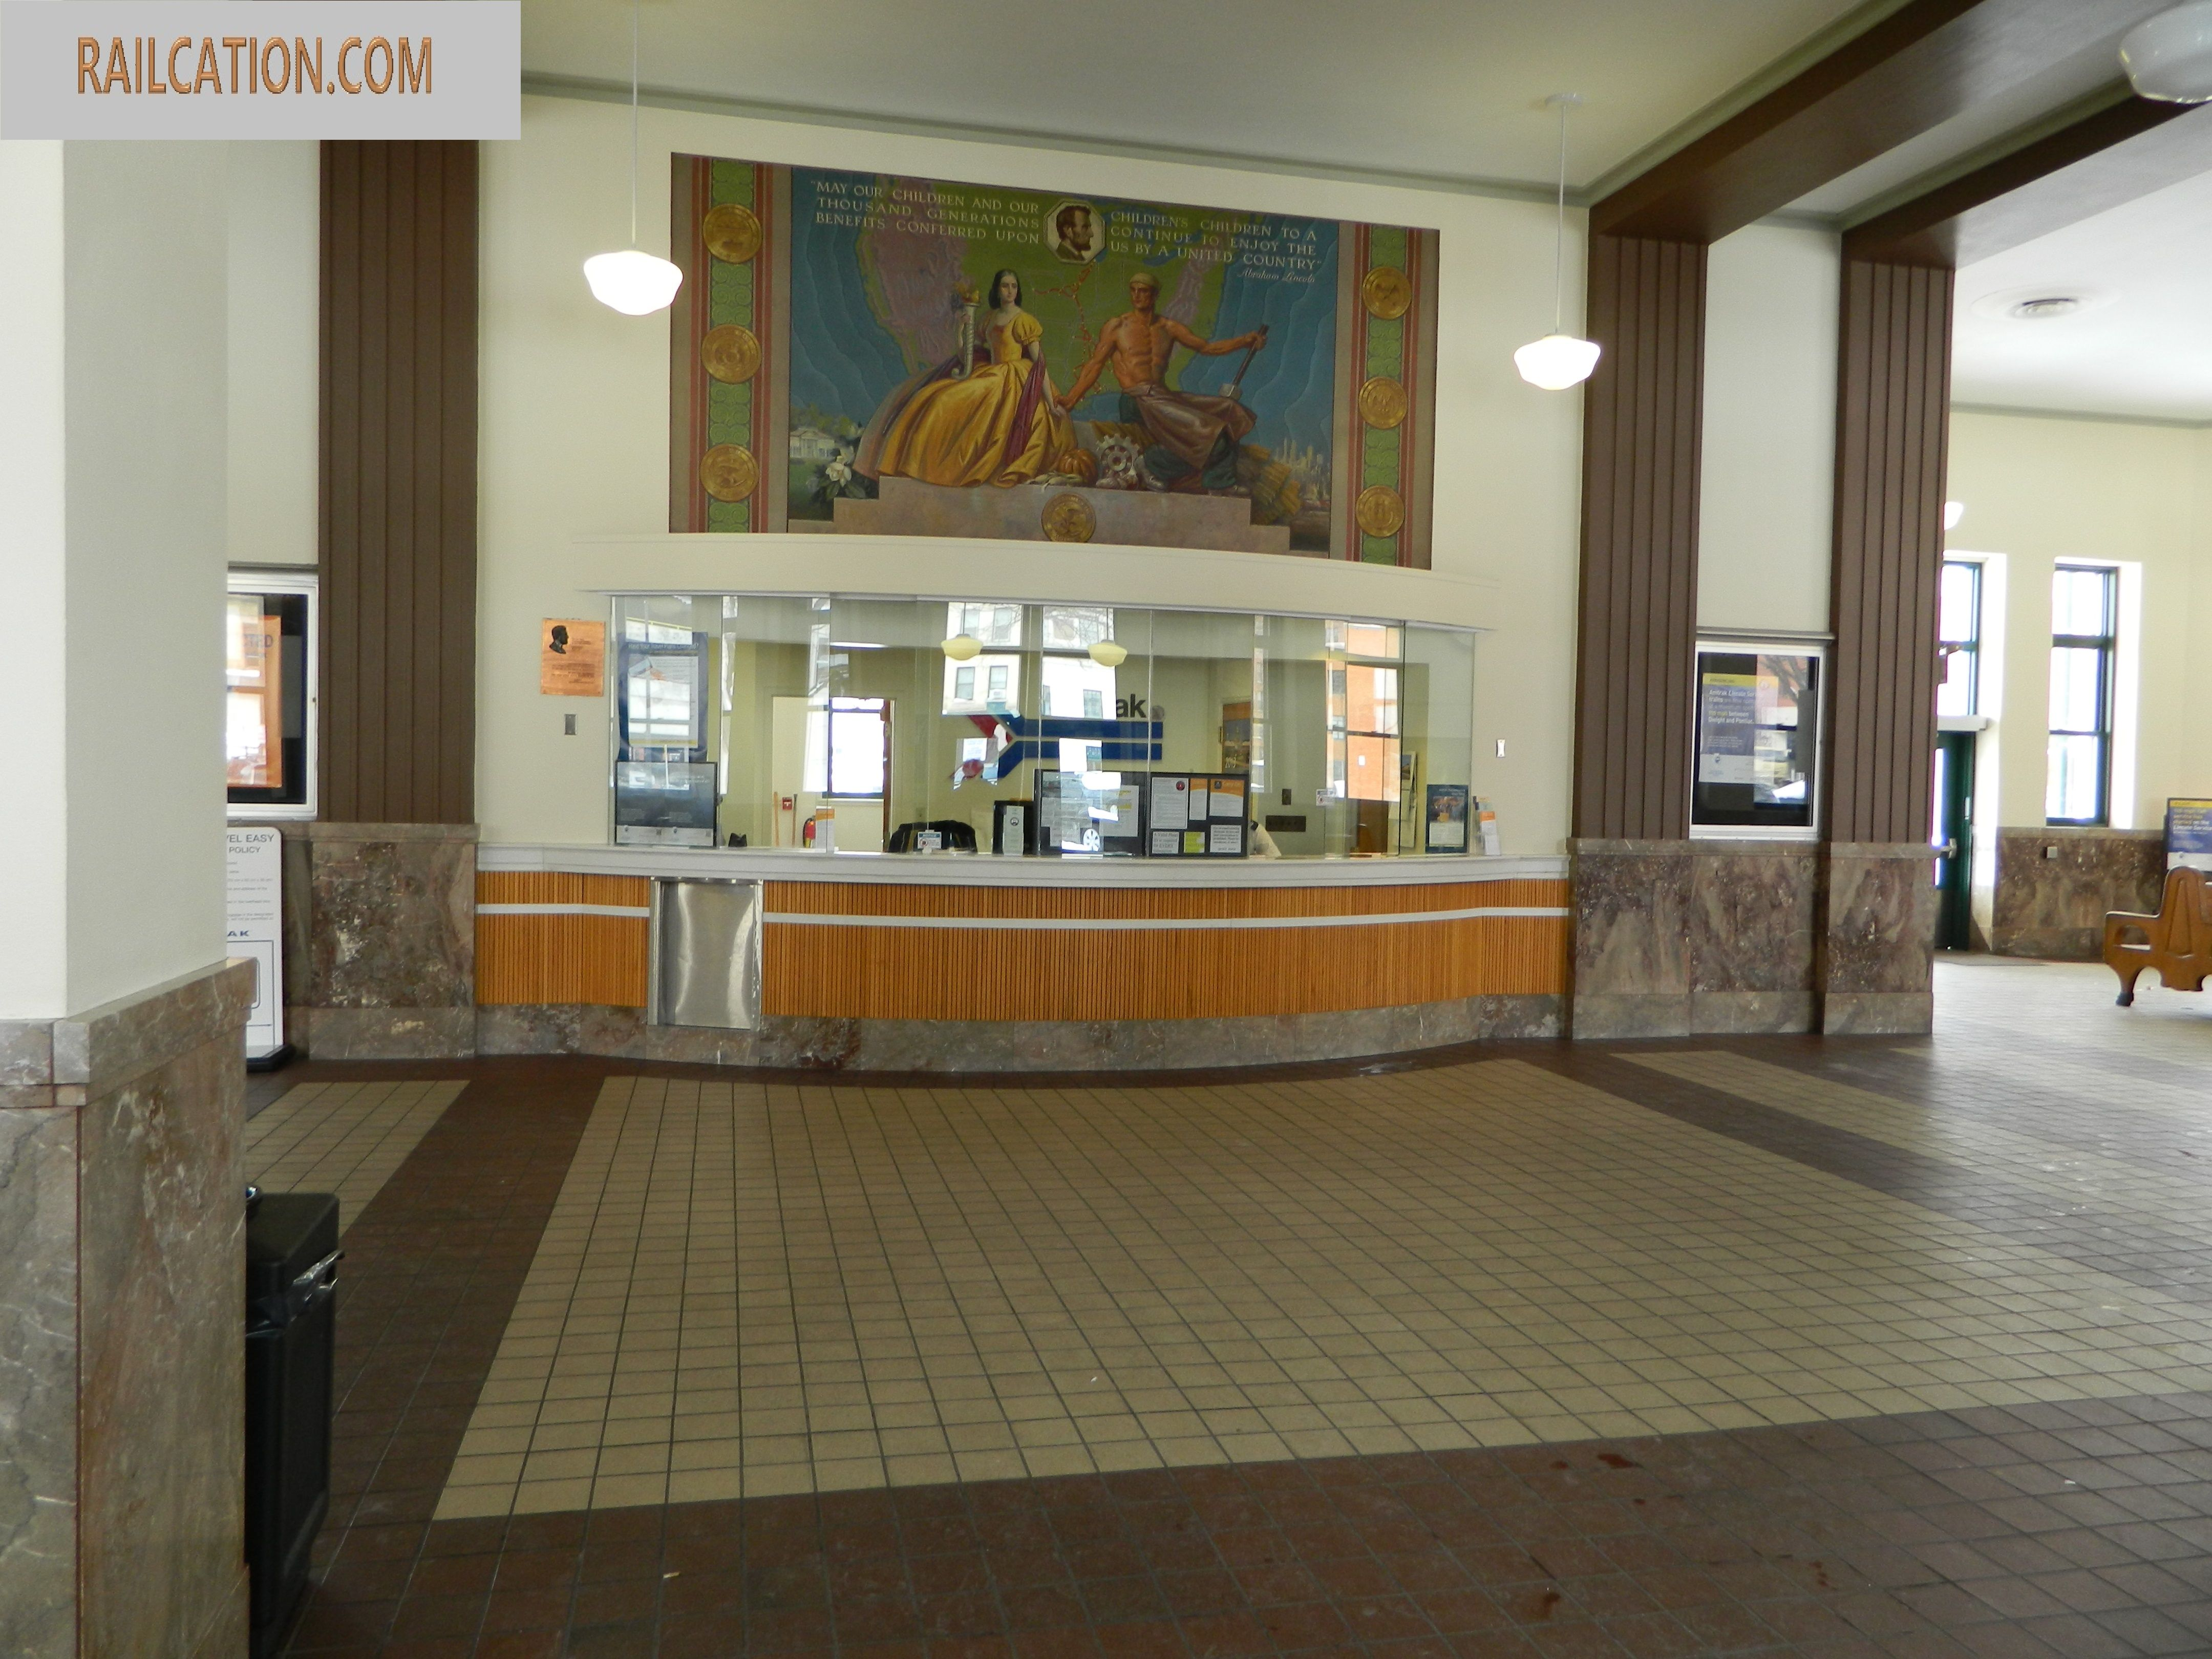 Springfield Amtrak lobby Lincoln Station